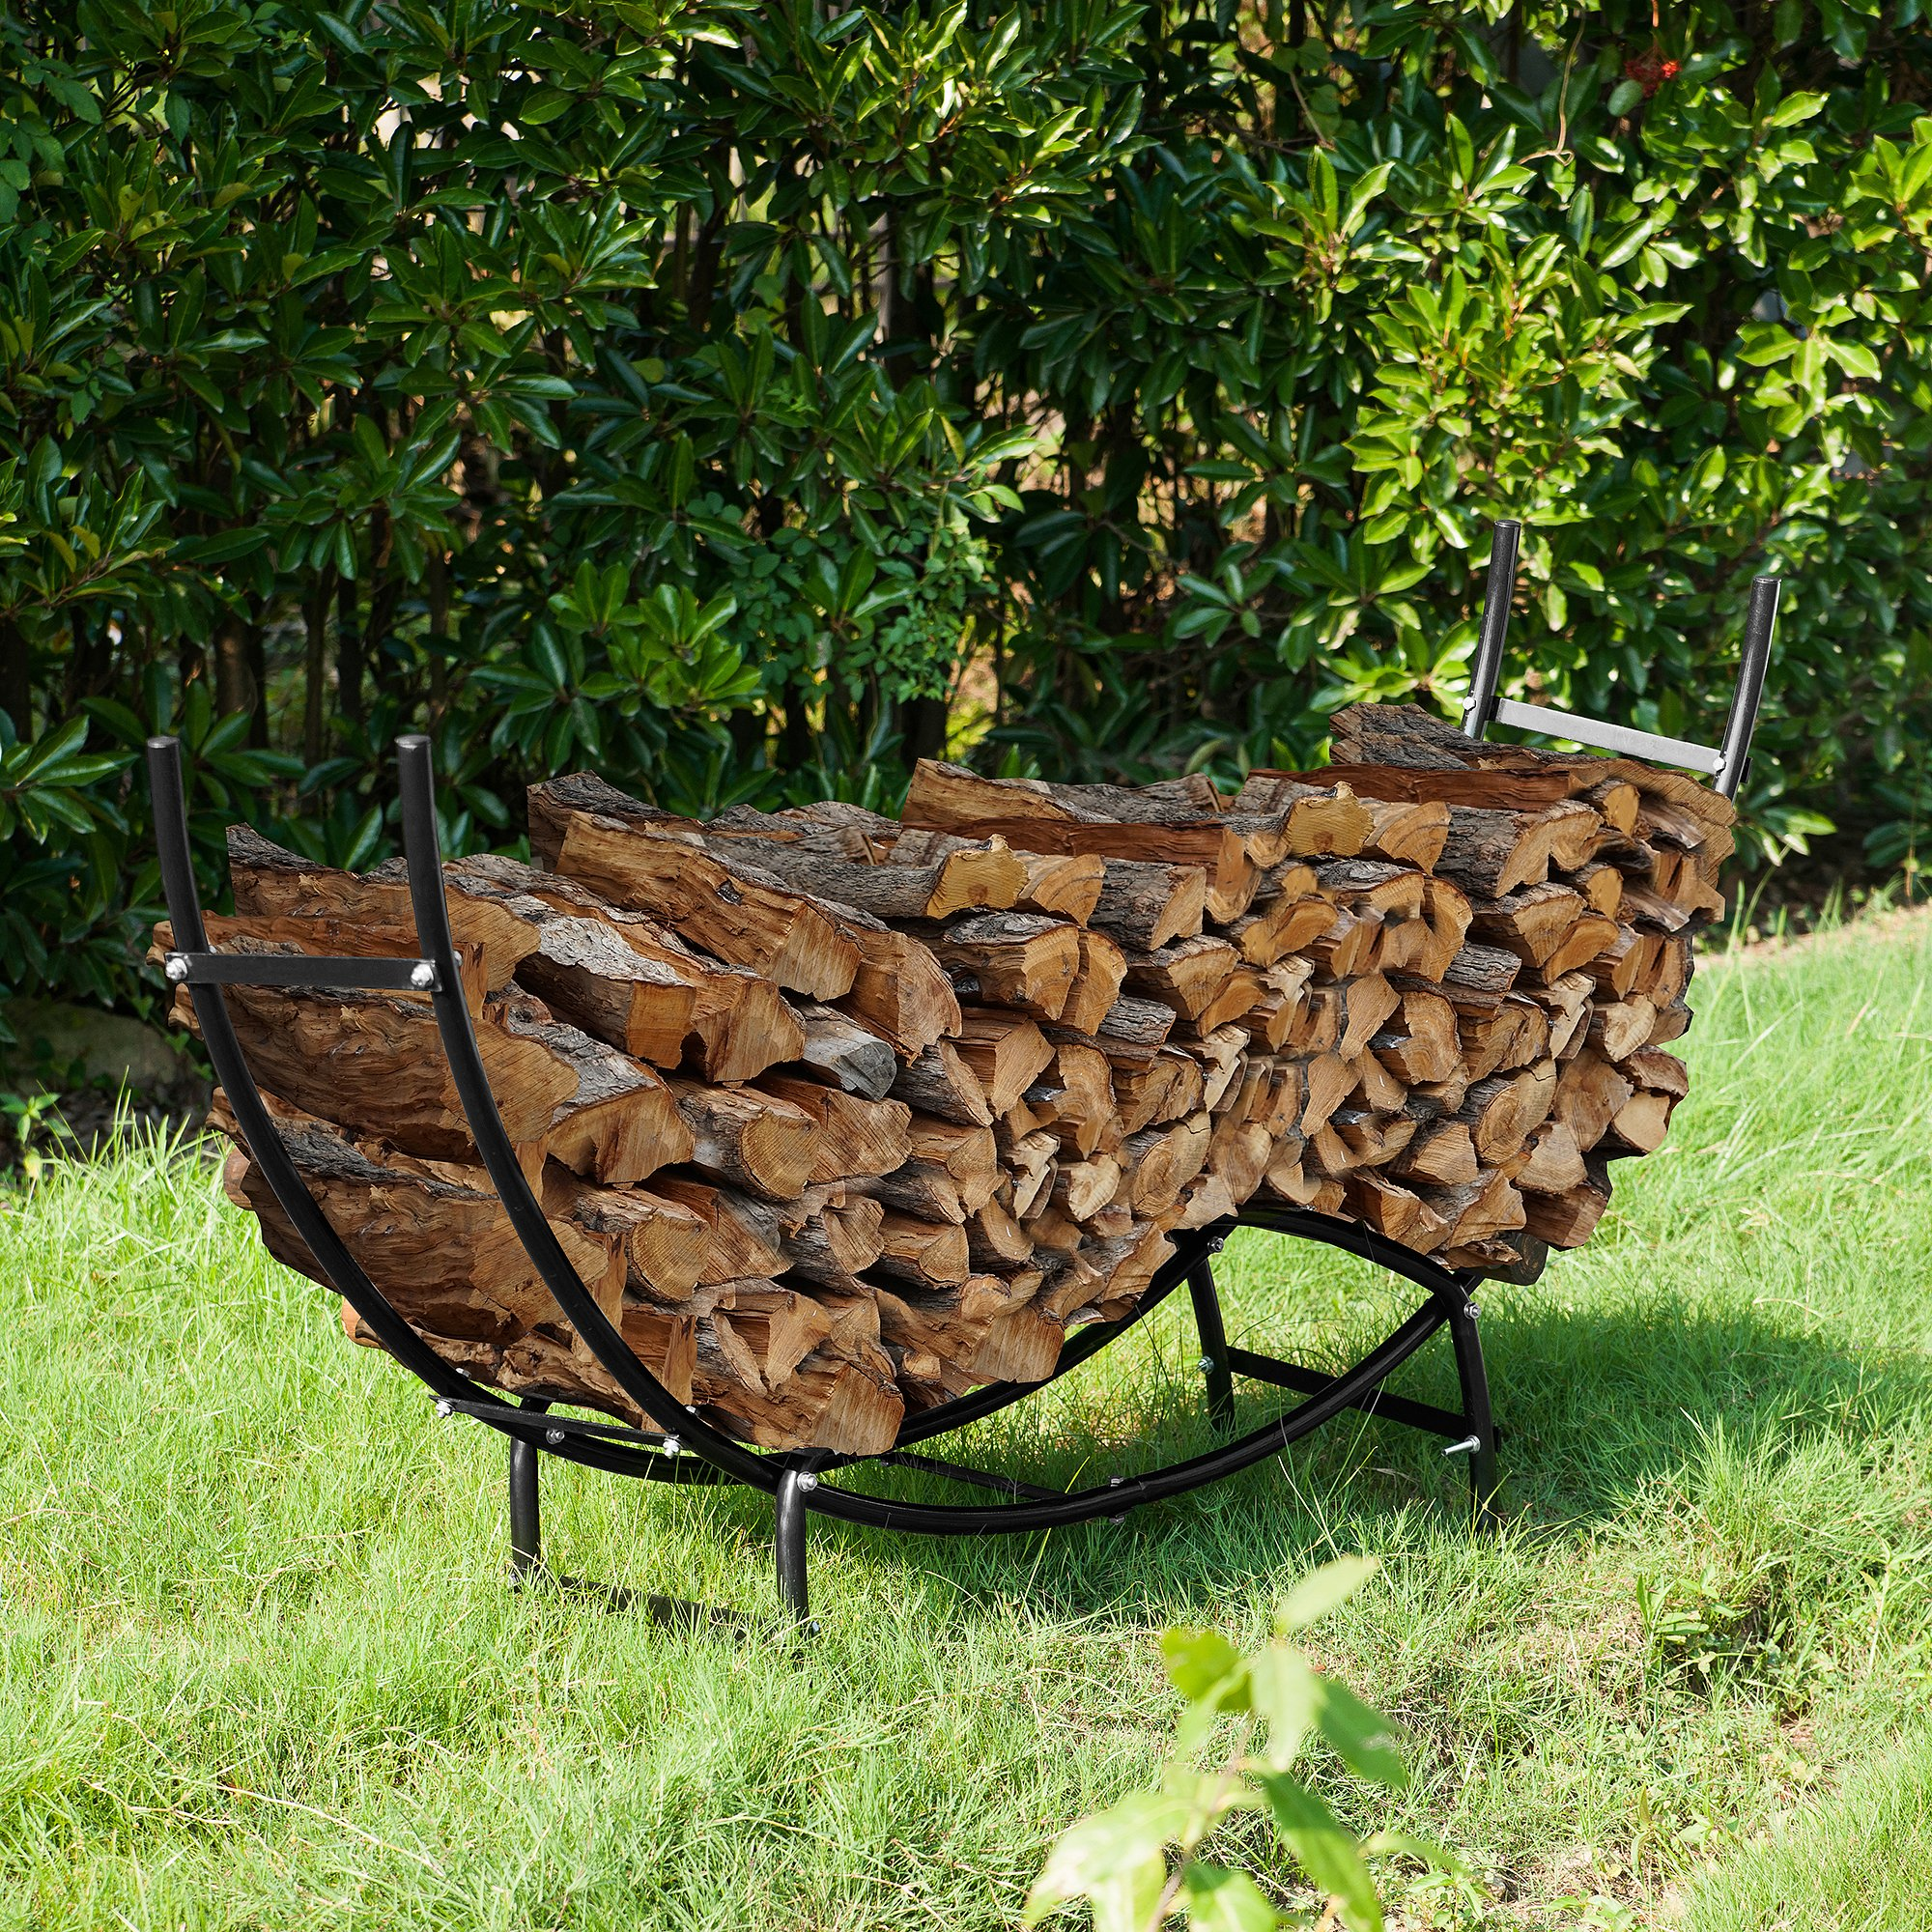 1910 Earth Worth | Firewood Curved Log Rack | 5 FT | Black by Earth Worth